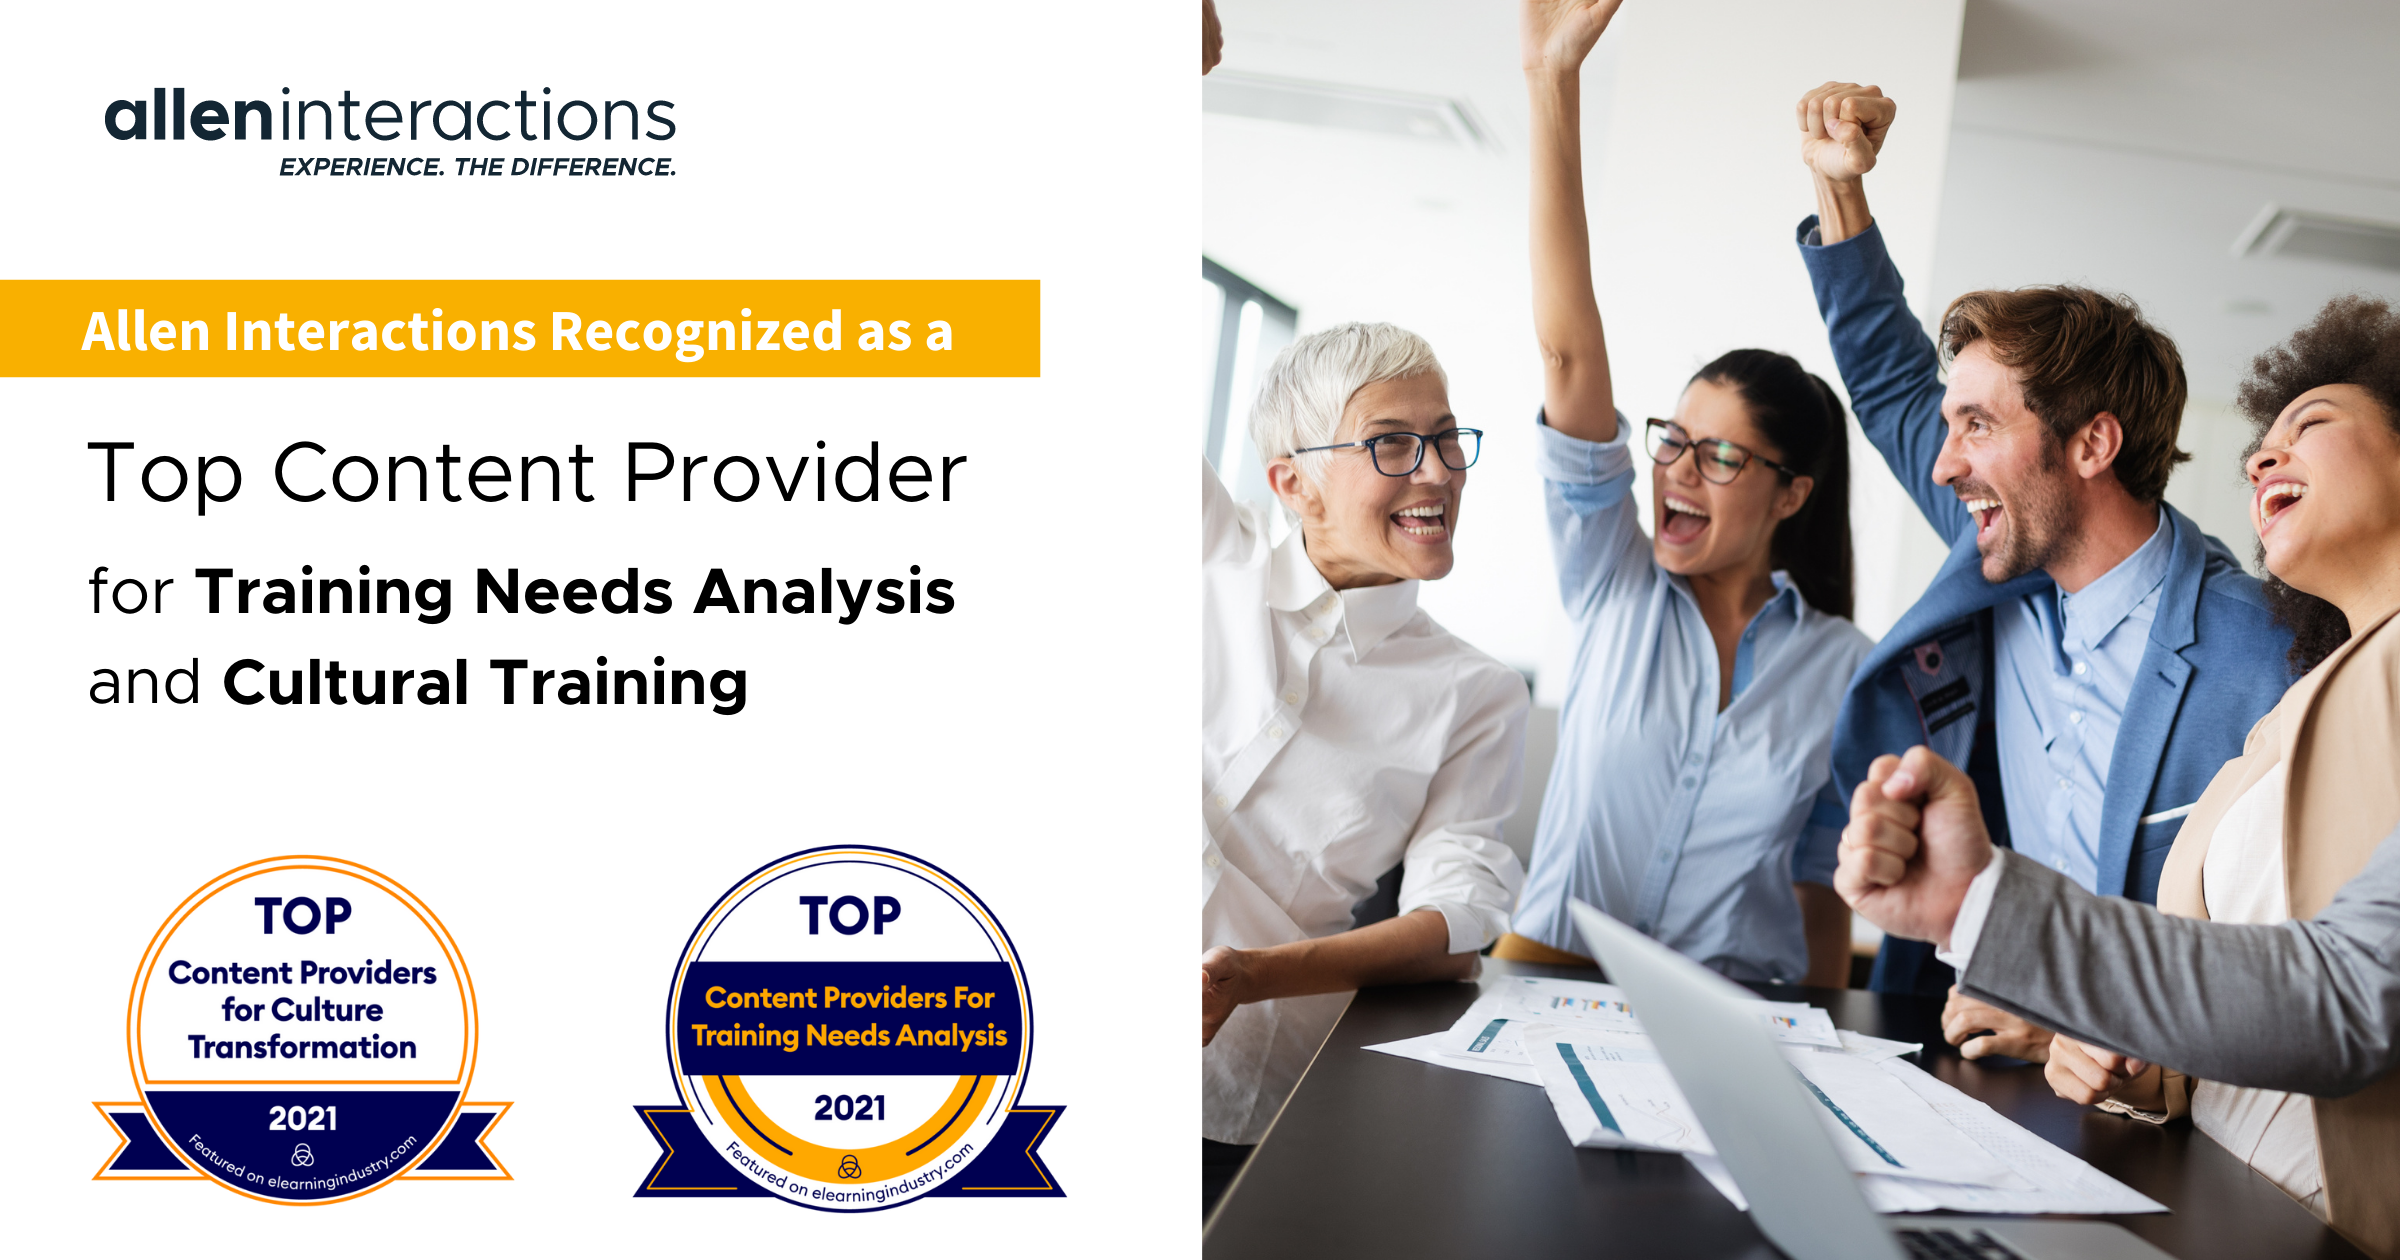 Allen Interactions Recognized by eLearning Industry as a 2021 Top Content Provider forTraining Needs Analysis and Cultural Training